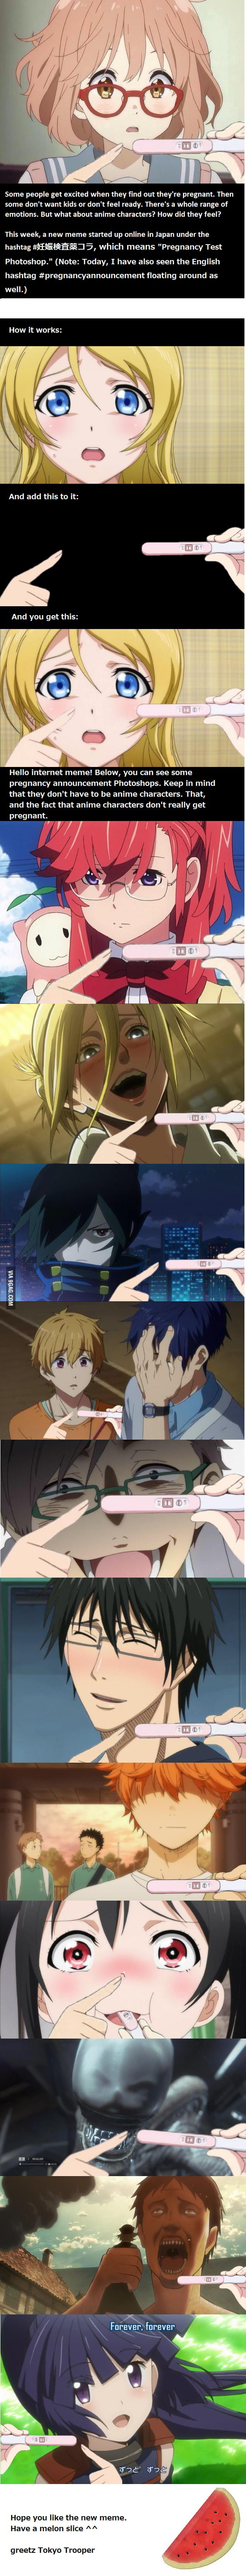 Anime Characters Announcing Theyre Pregnant Is A New Meme 9gag